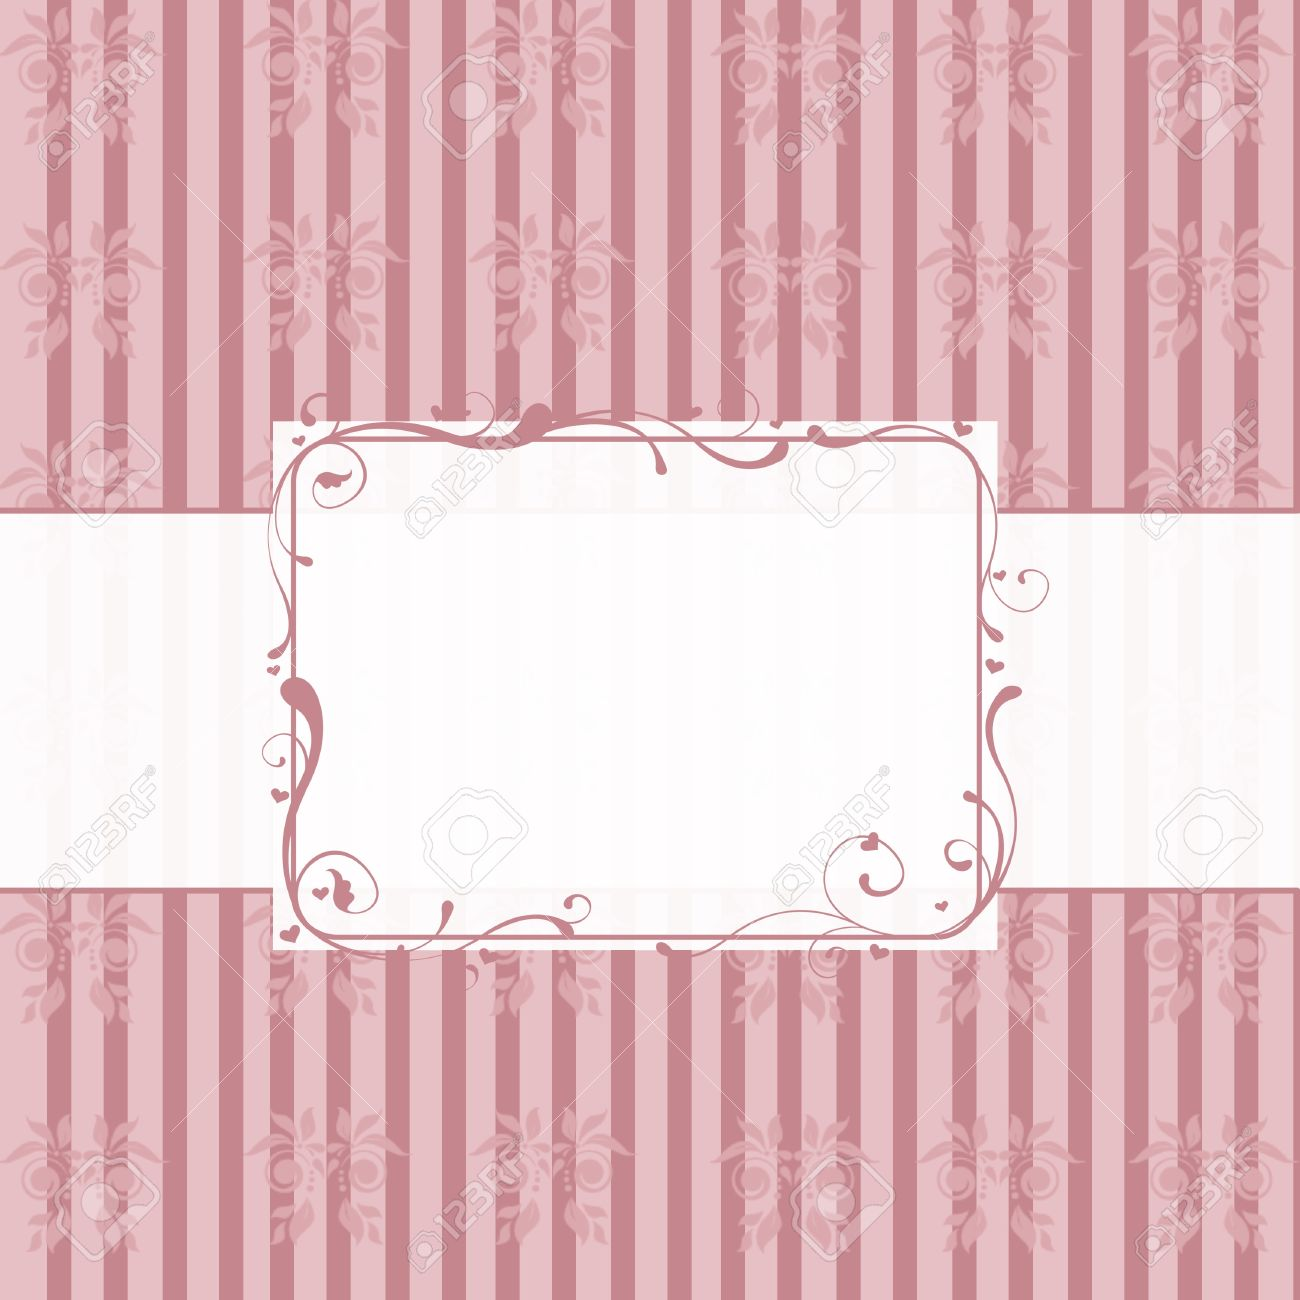 Vintage Kitchen Background With Place For Text